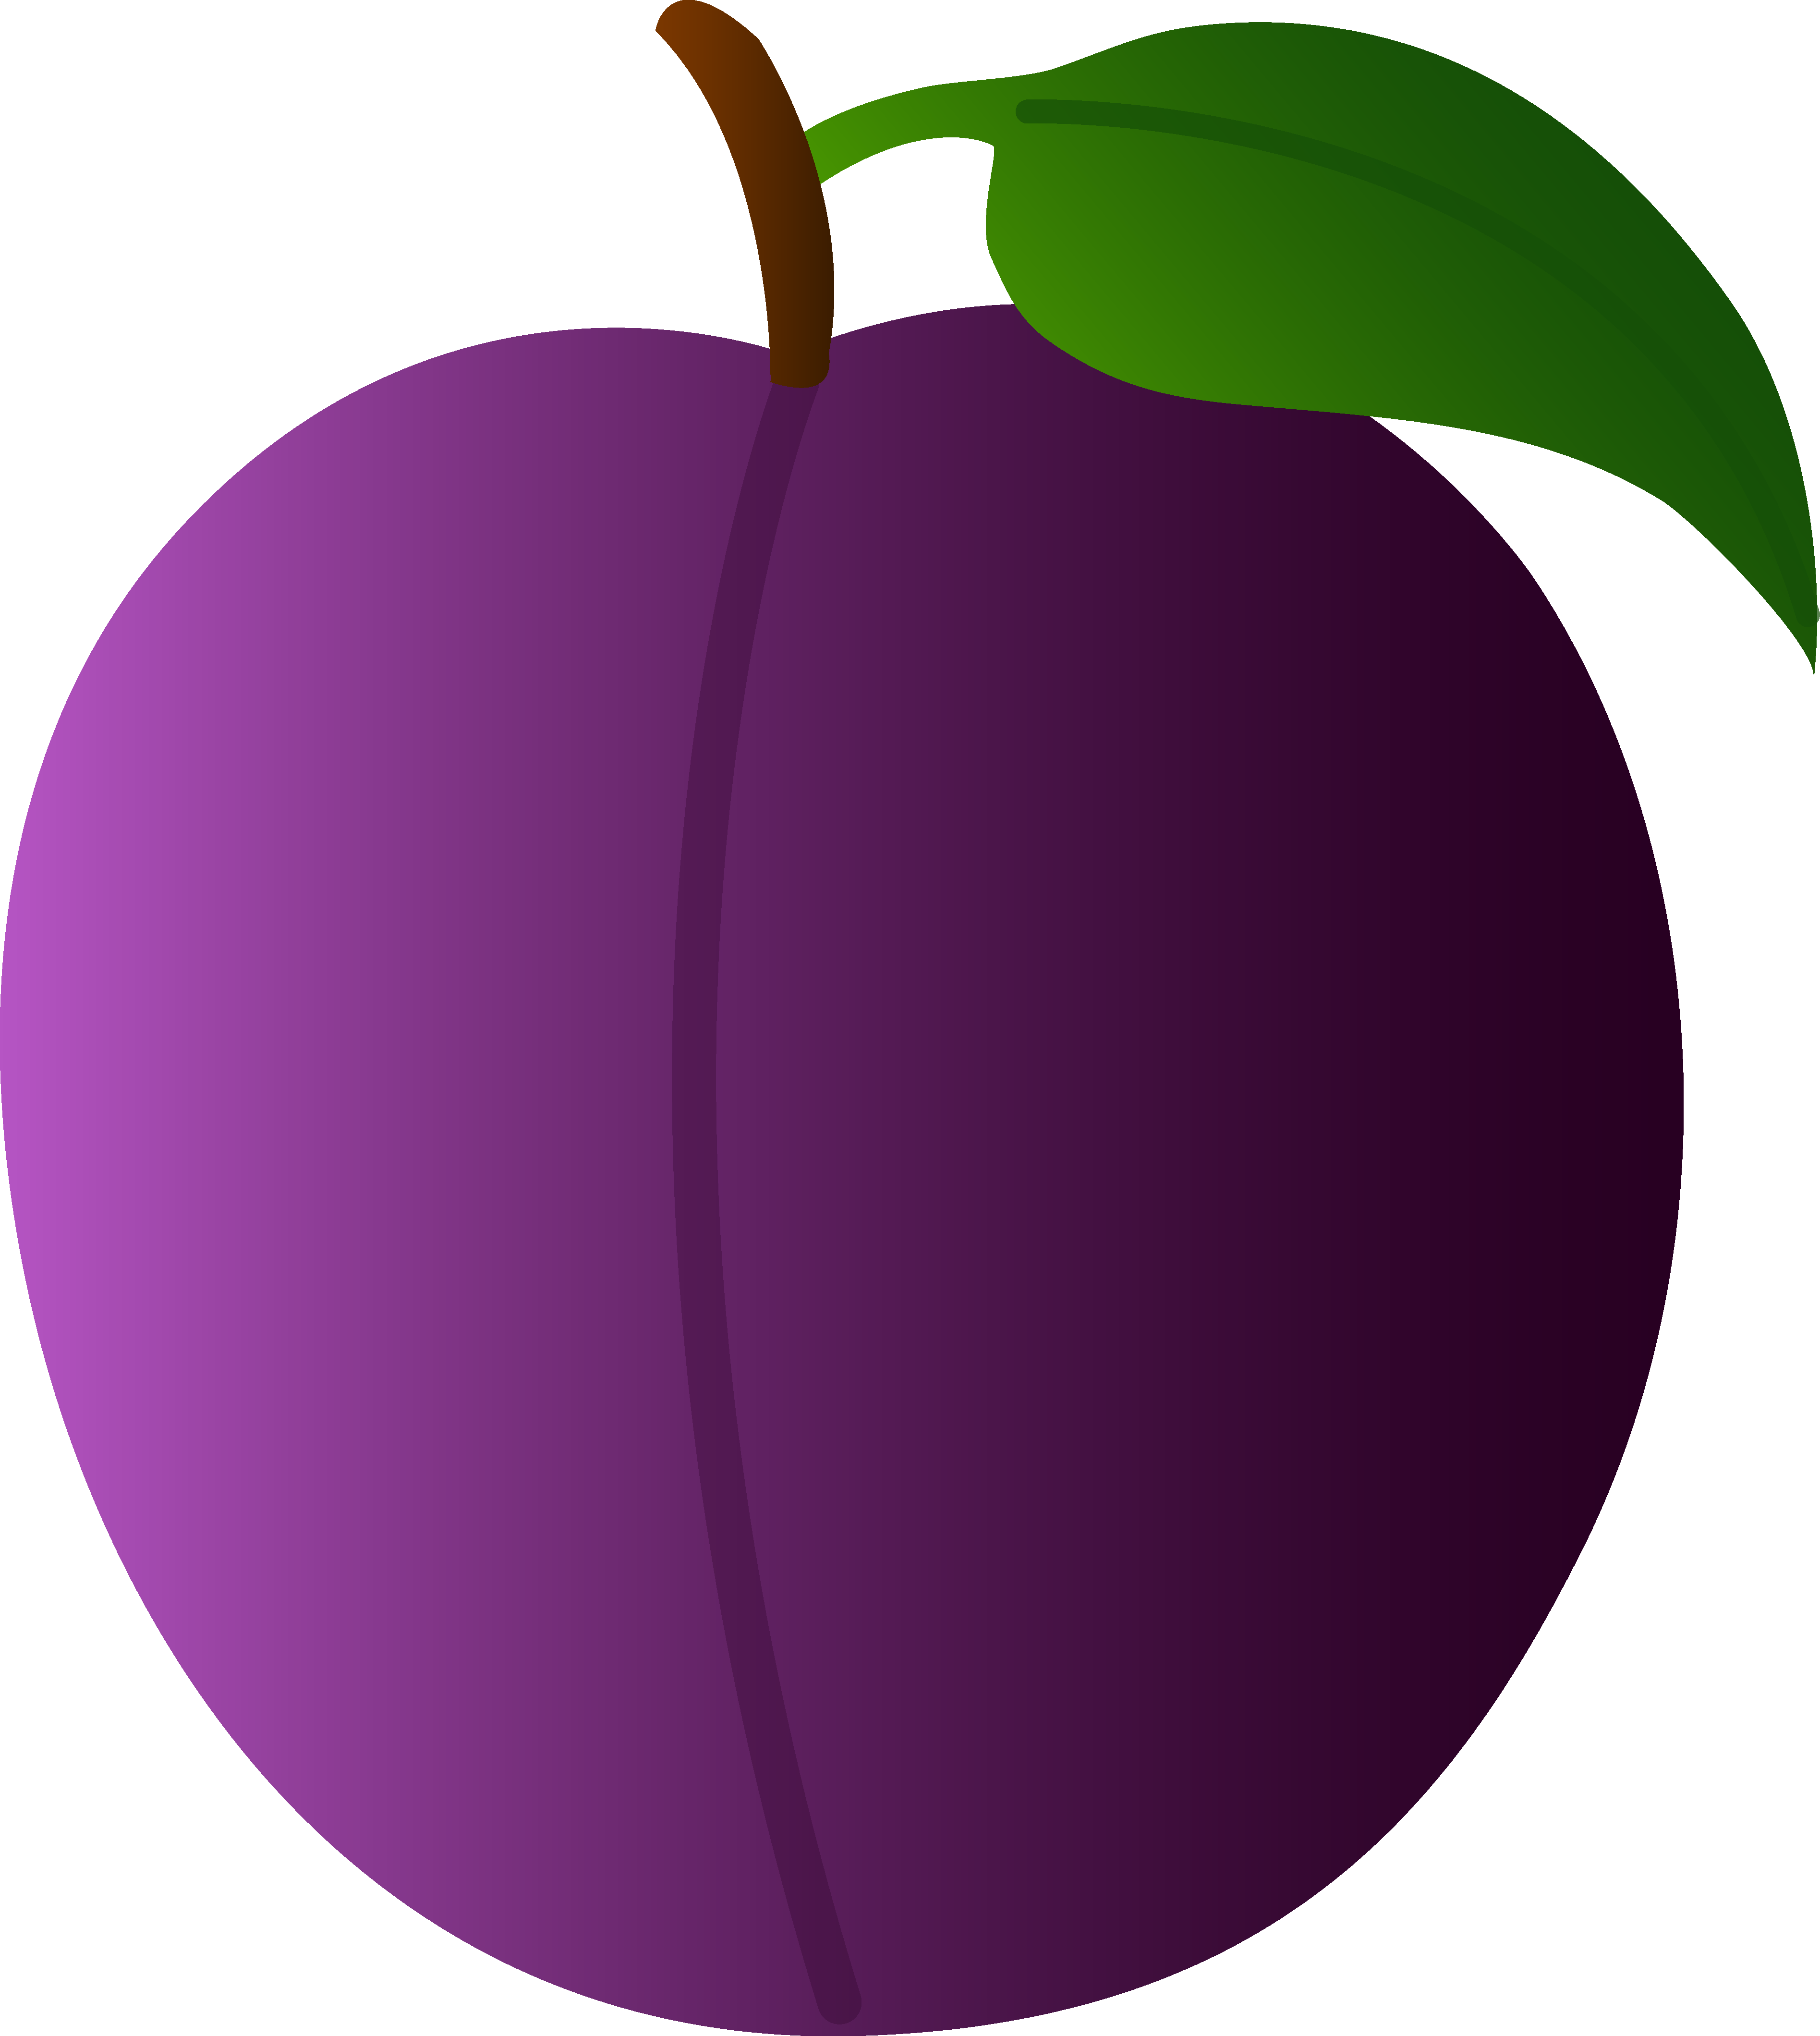 Free cartoon clipart images of apple trees clip free stock Sweet Purple Plum - Free Clip Art clip free stock